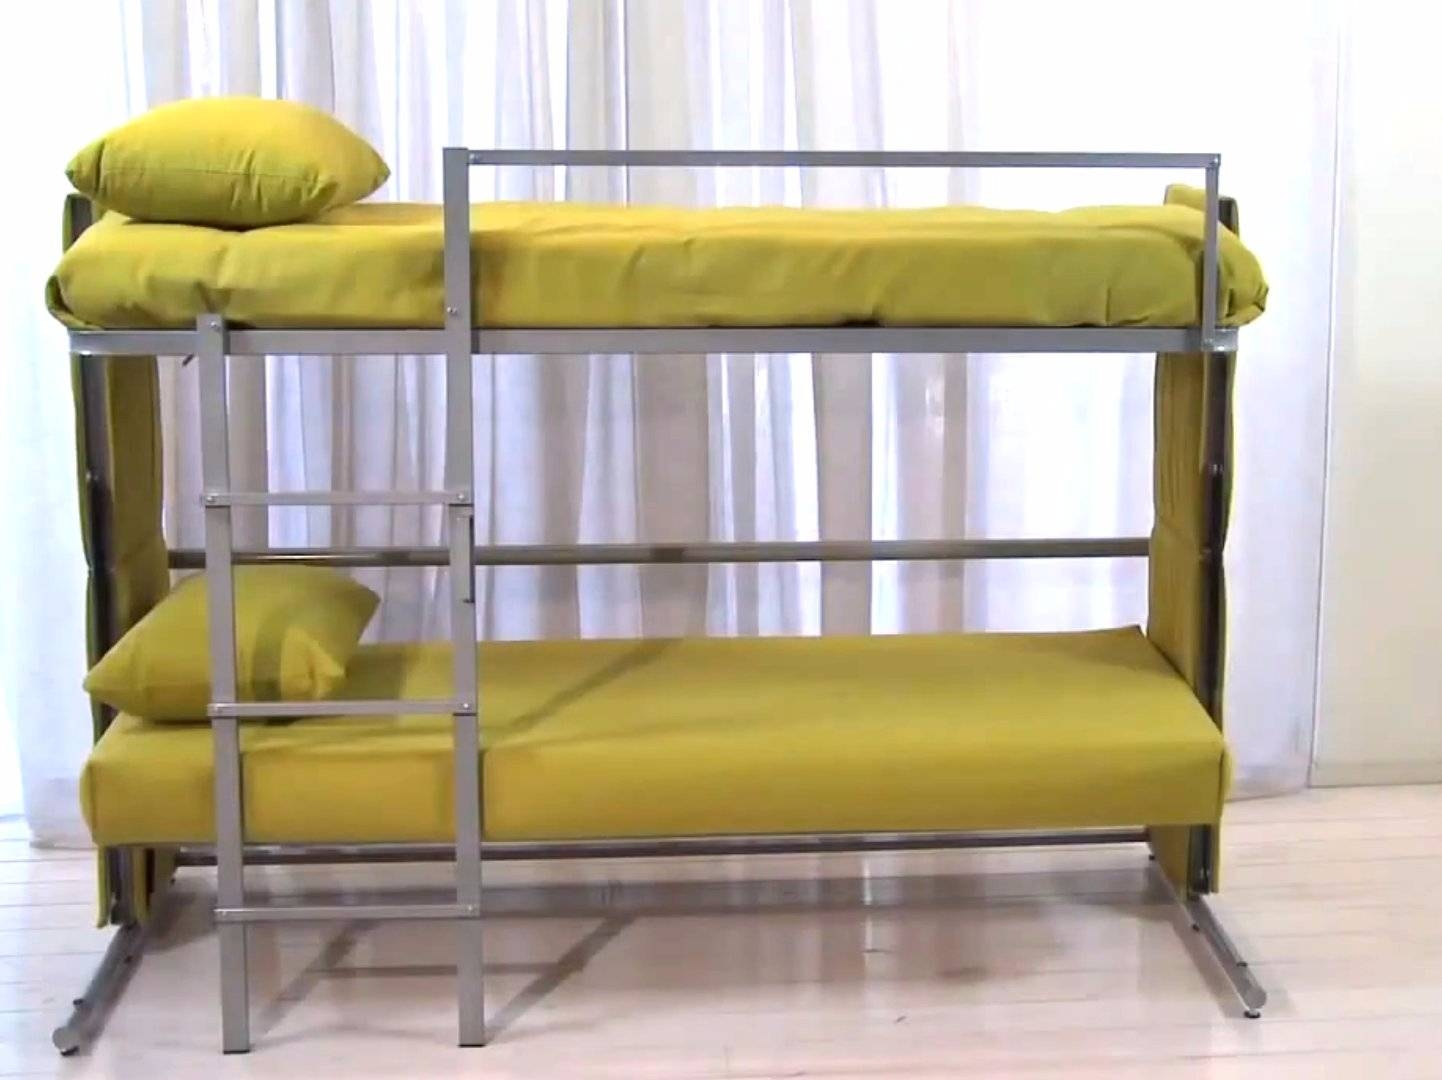 Sofa Folds Out Into A Bunk Bed - Business Insider within Sofa Bunk Beds (Image 25 of 30)